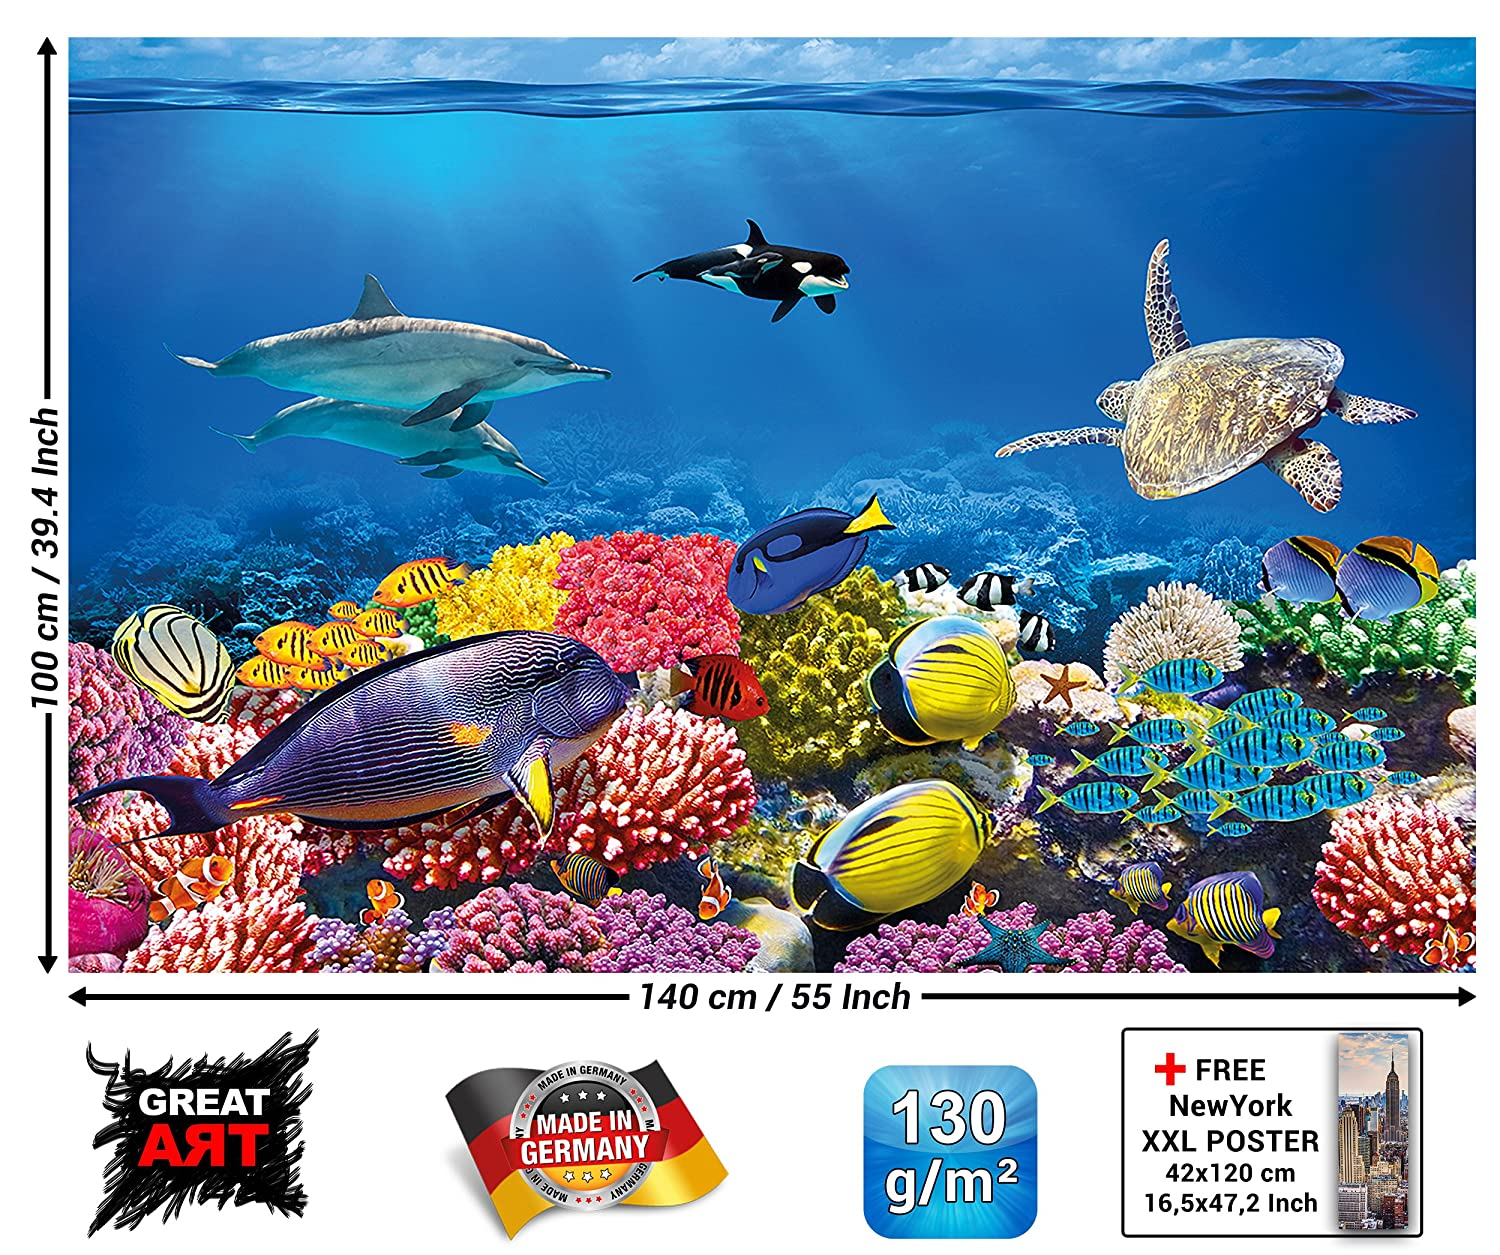 Amazon.de: Poster Kinderzimmer Aquarium Wandbild Dekoration ...